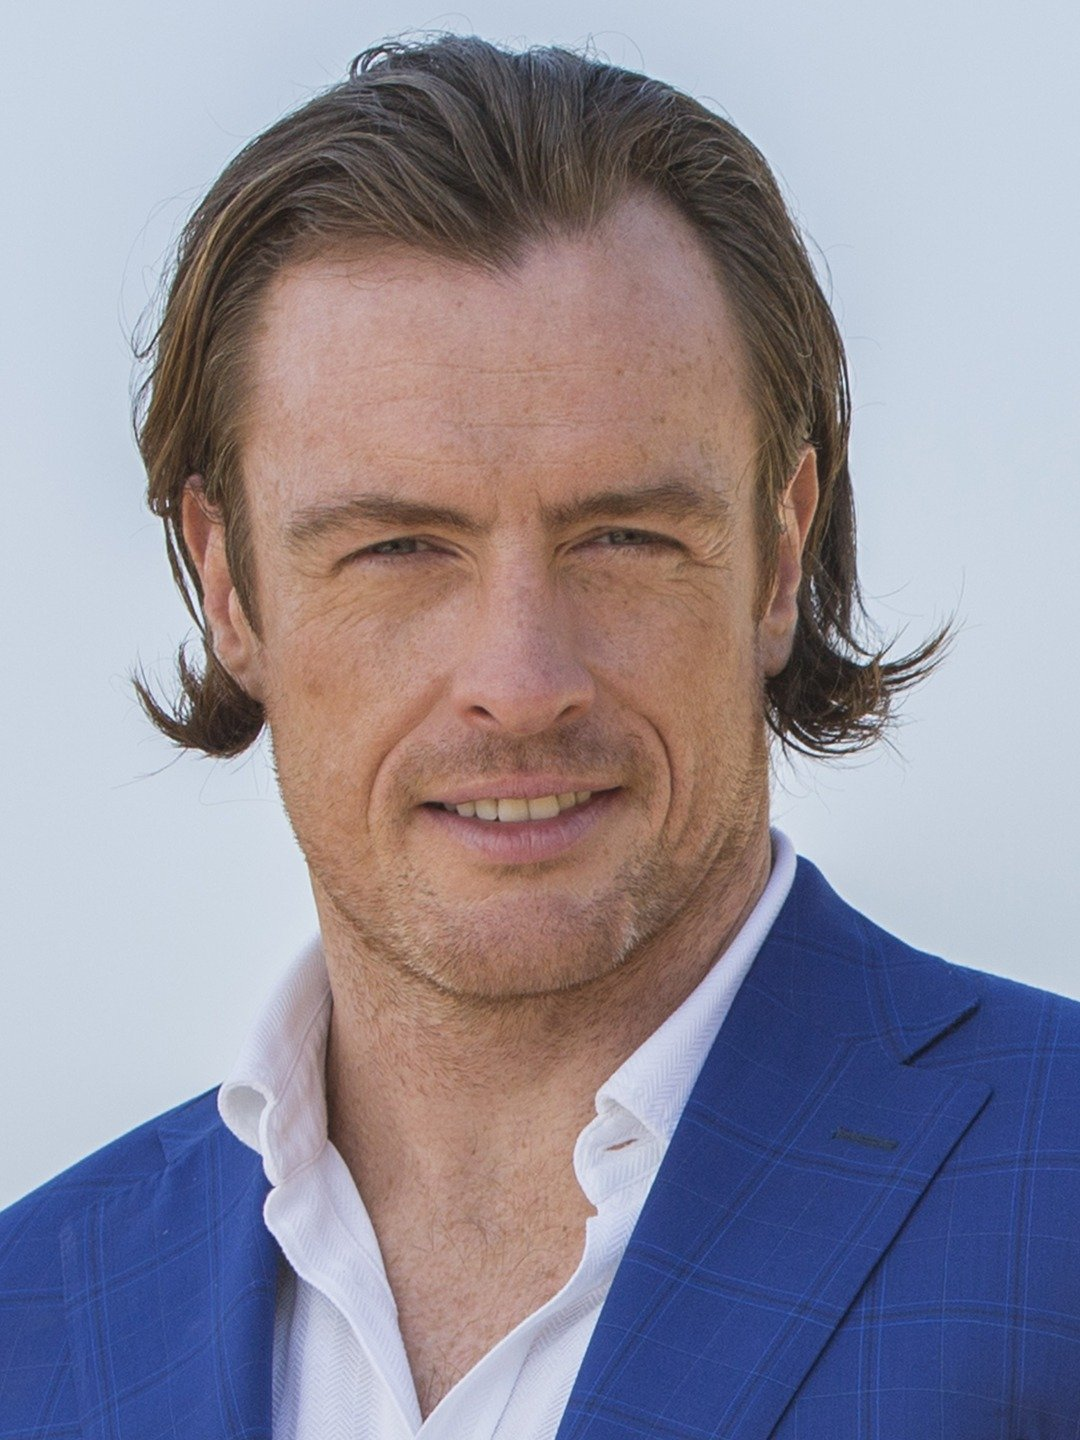 How tall is Toby Stephens?